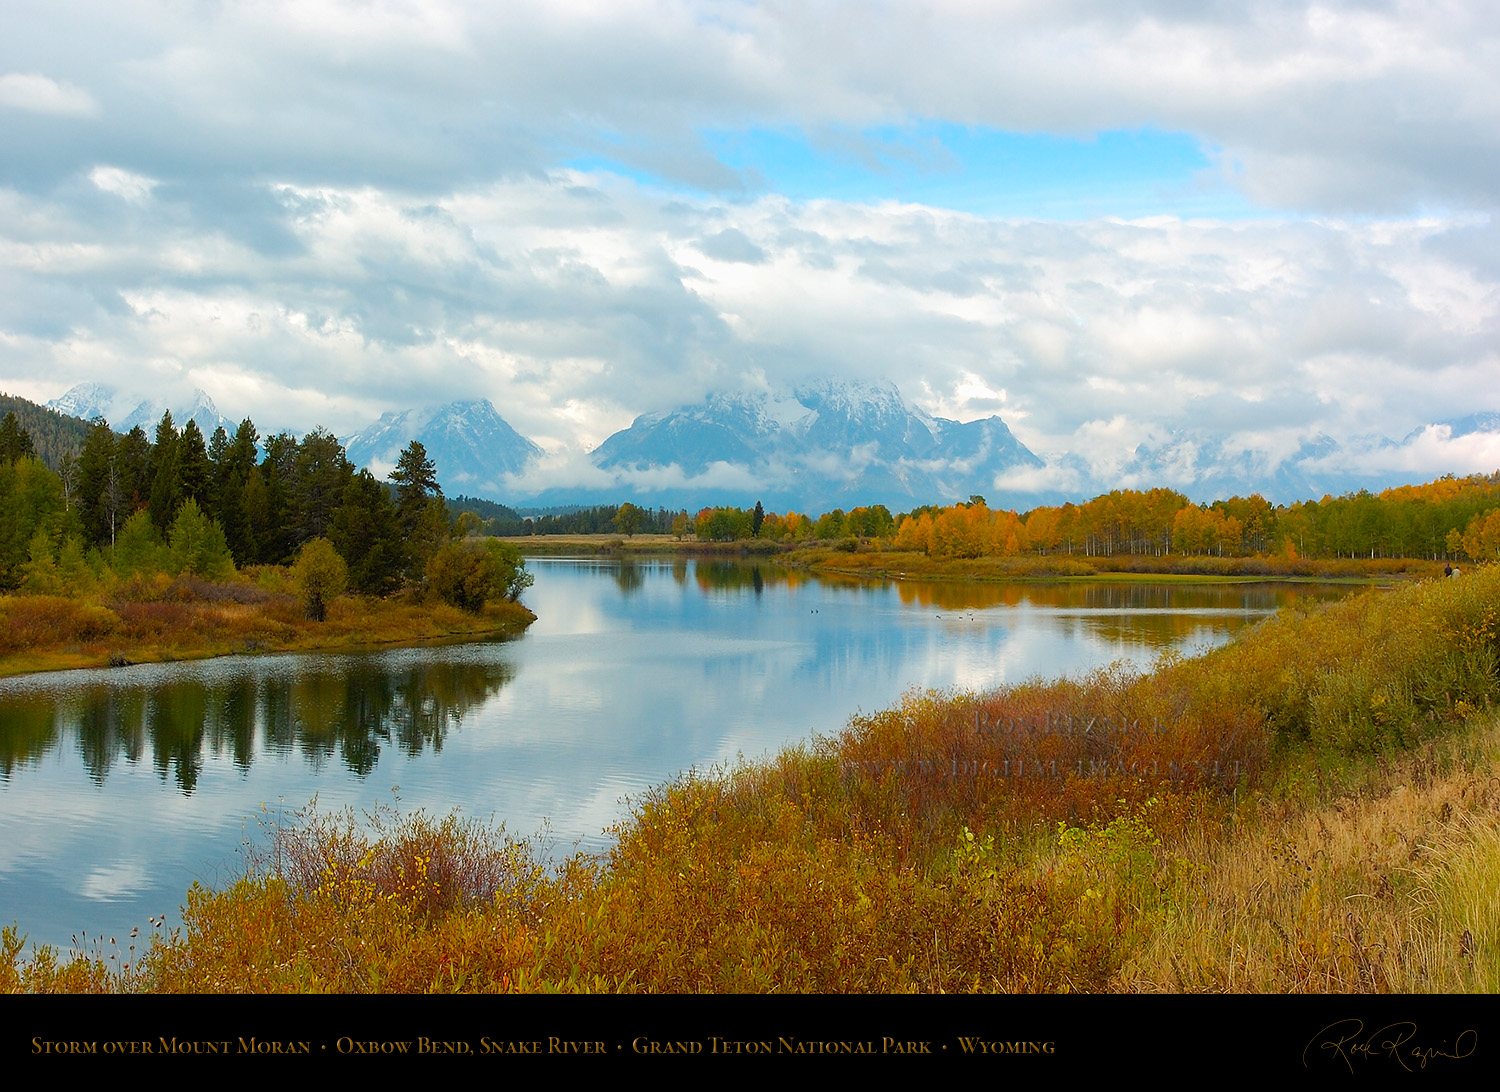 oxbow wyoming galerija scenic - photo #15